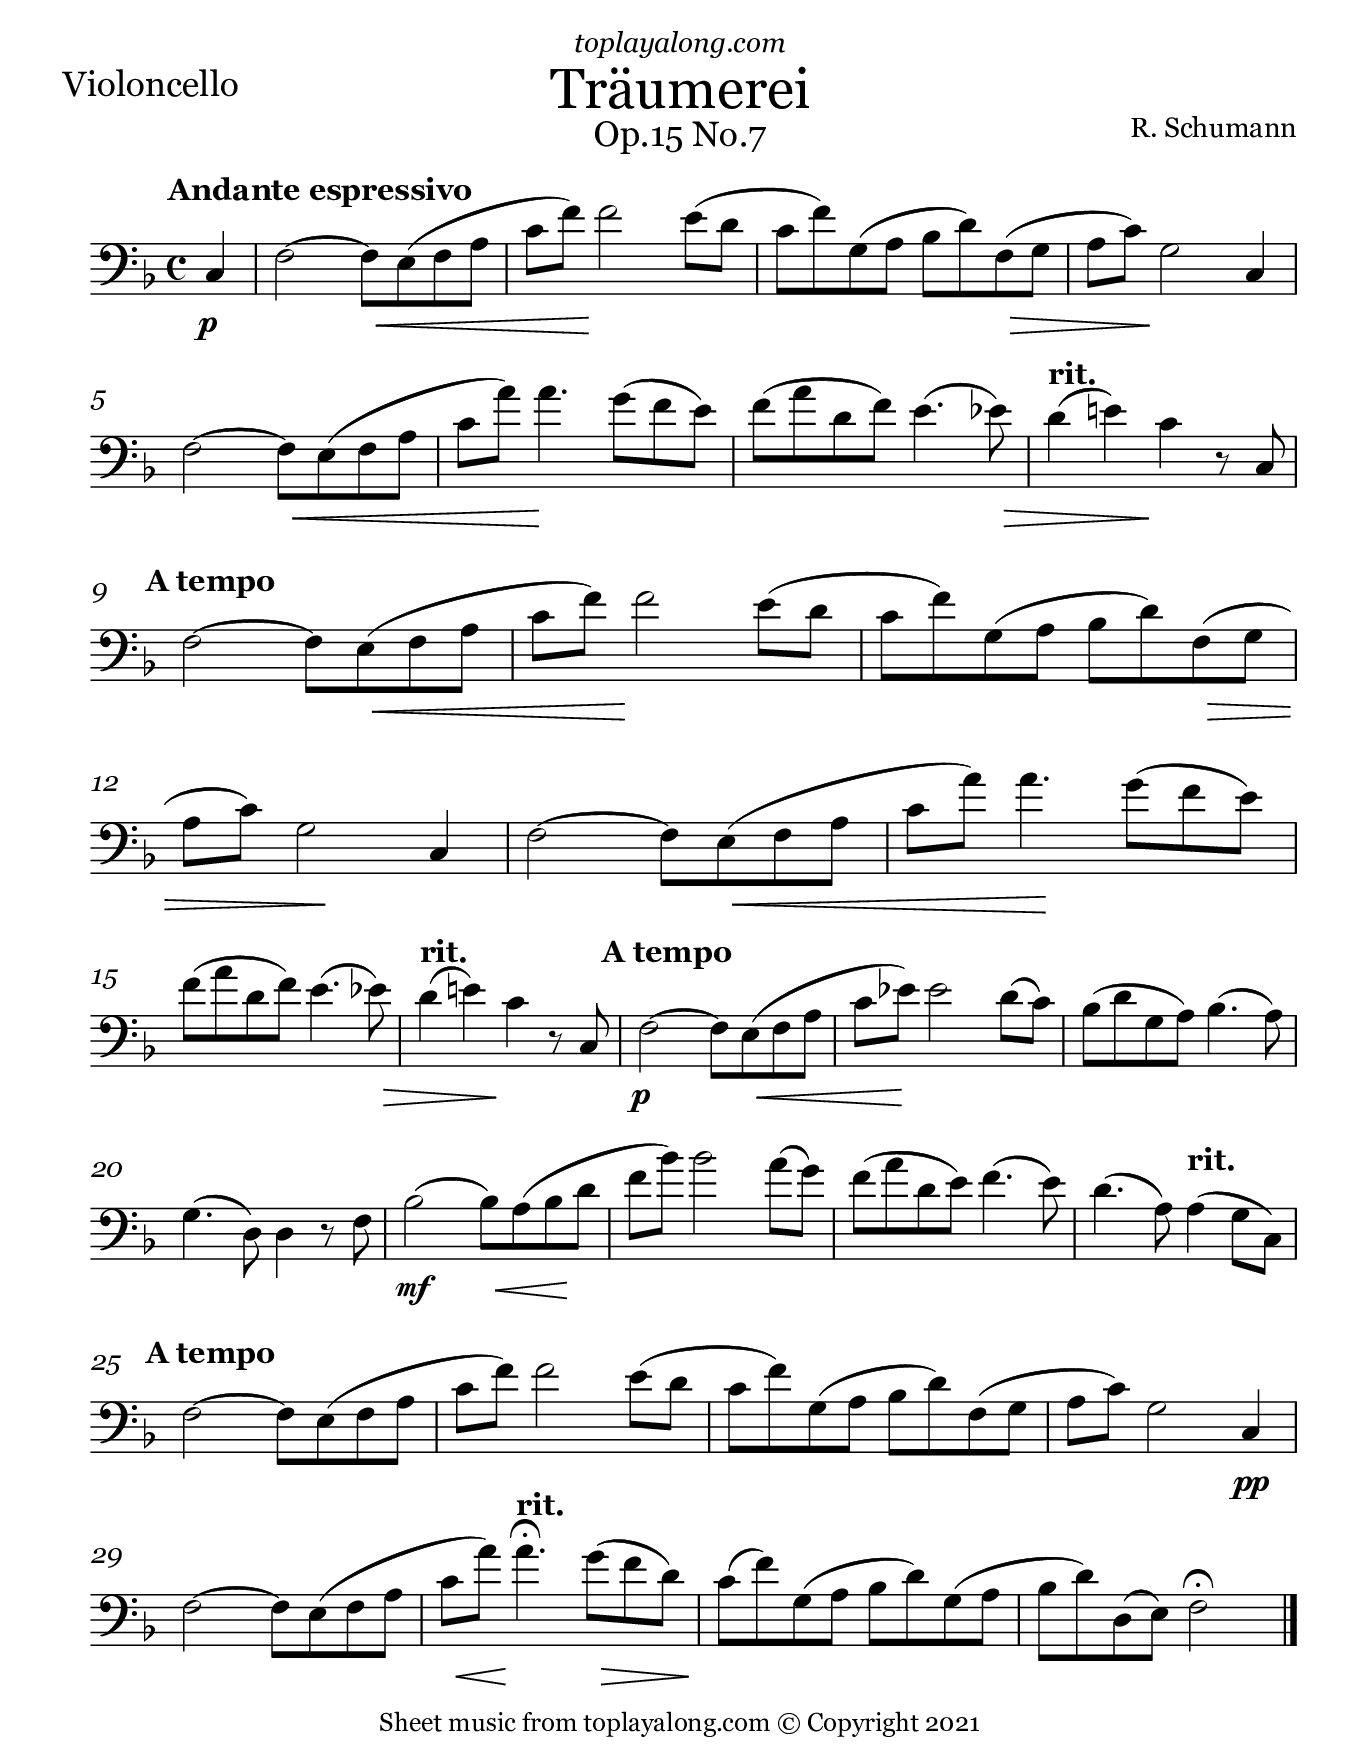 Traumerei Op. 15 No. 7 by Schumann. Sheet music for Cello, page 1.